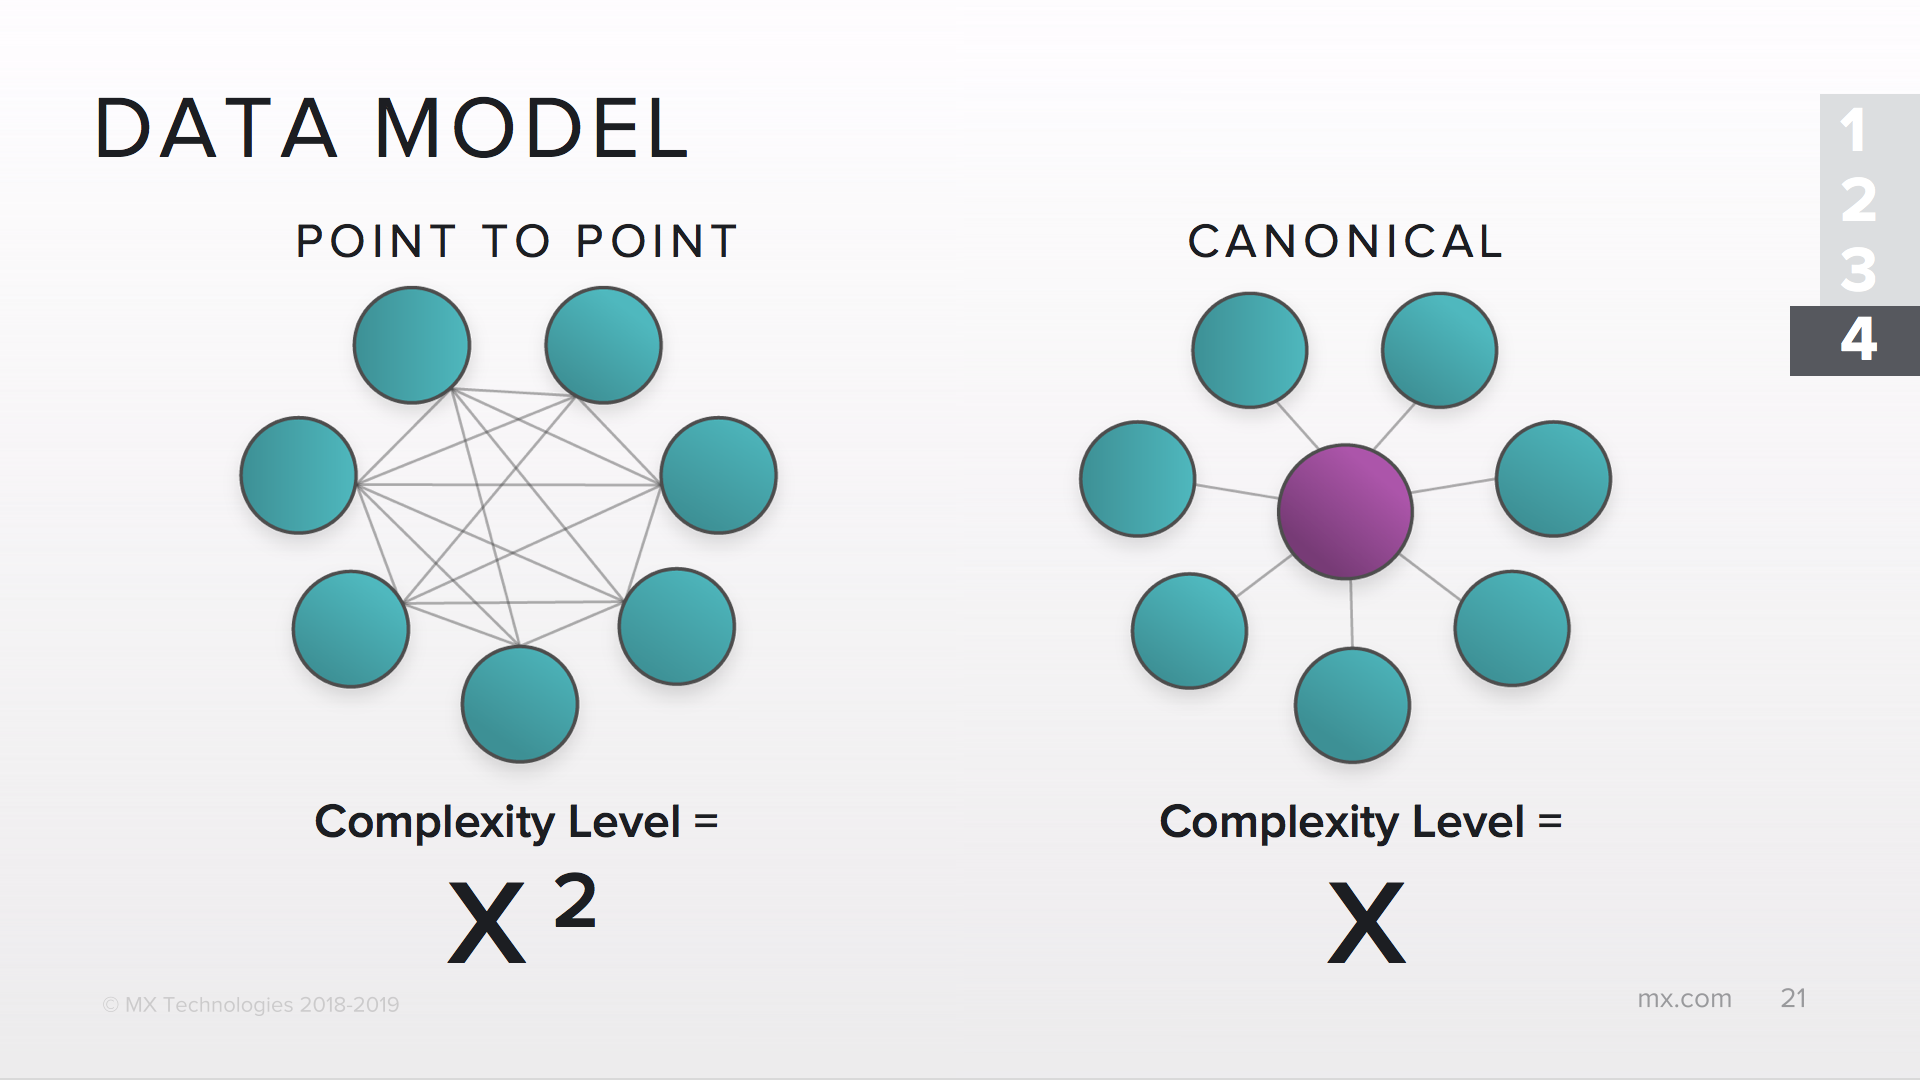 point to point data model vs canonical data model